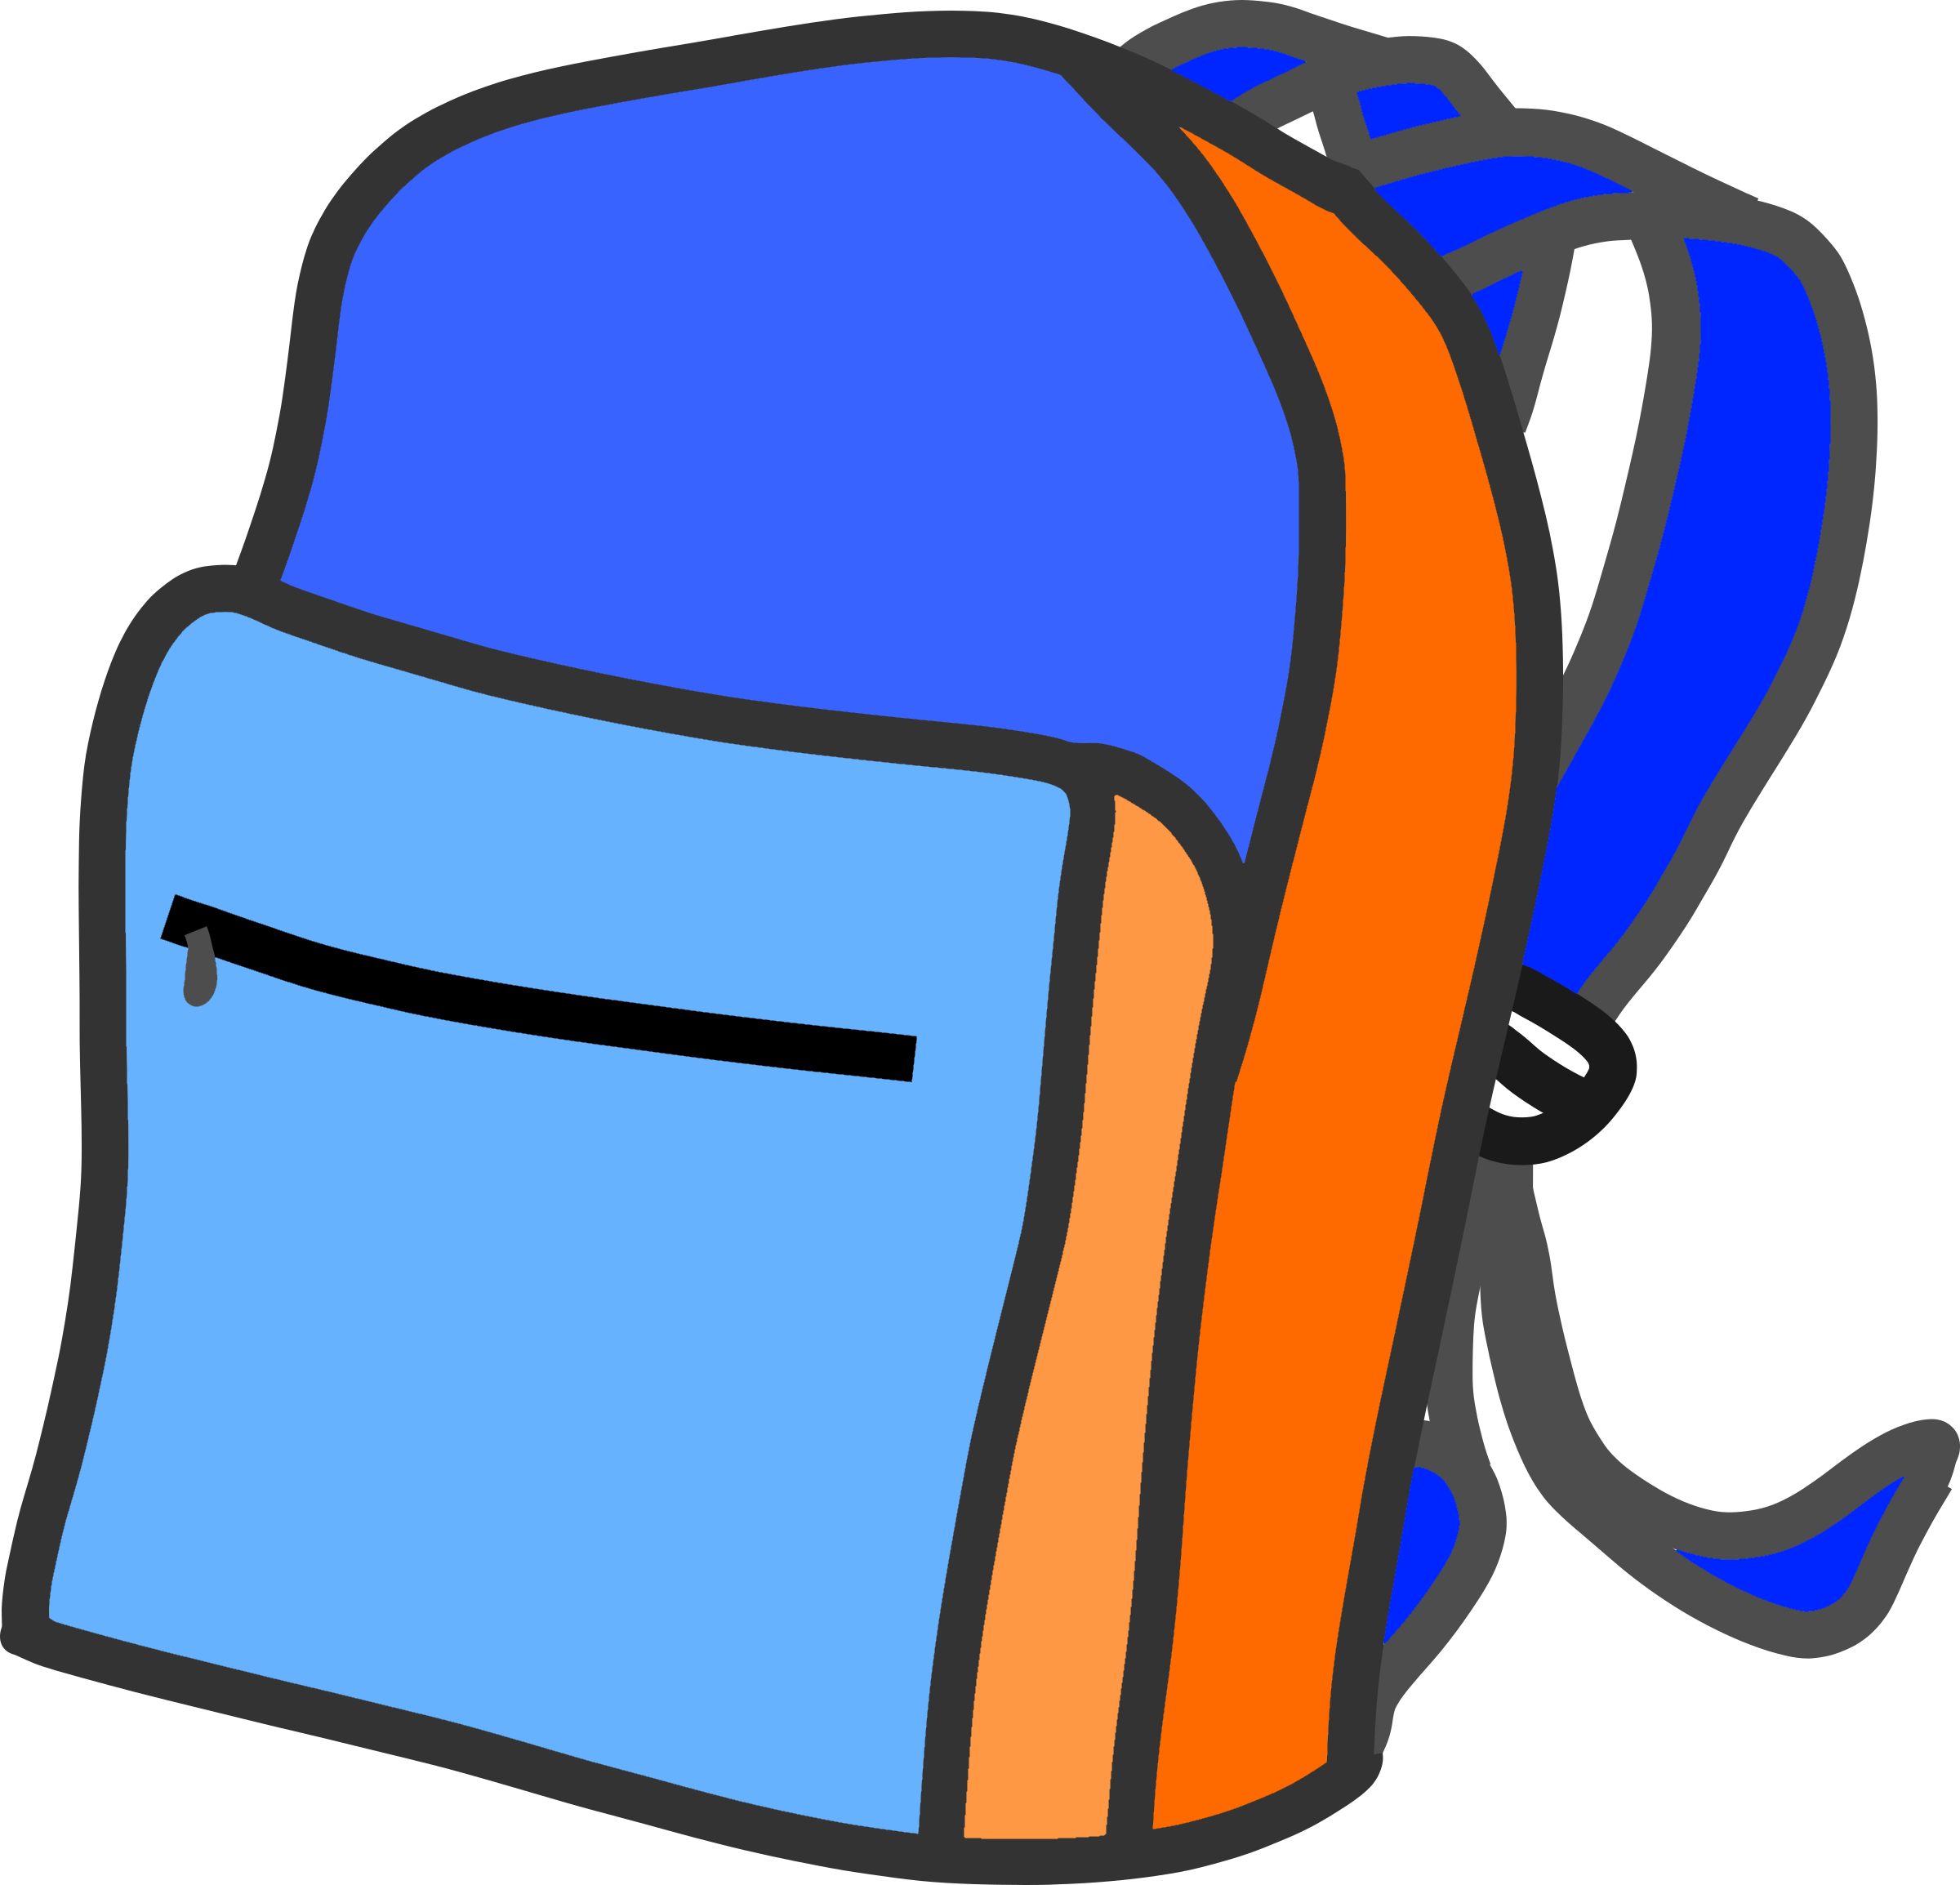 clipart rucksack - photo #12